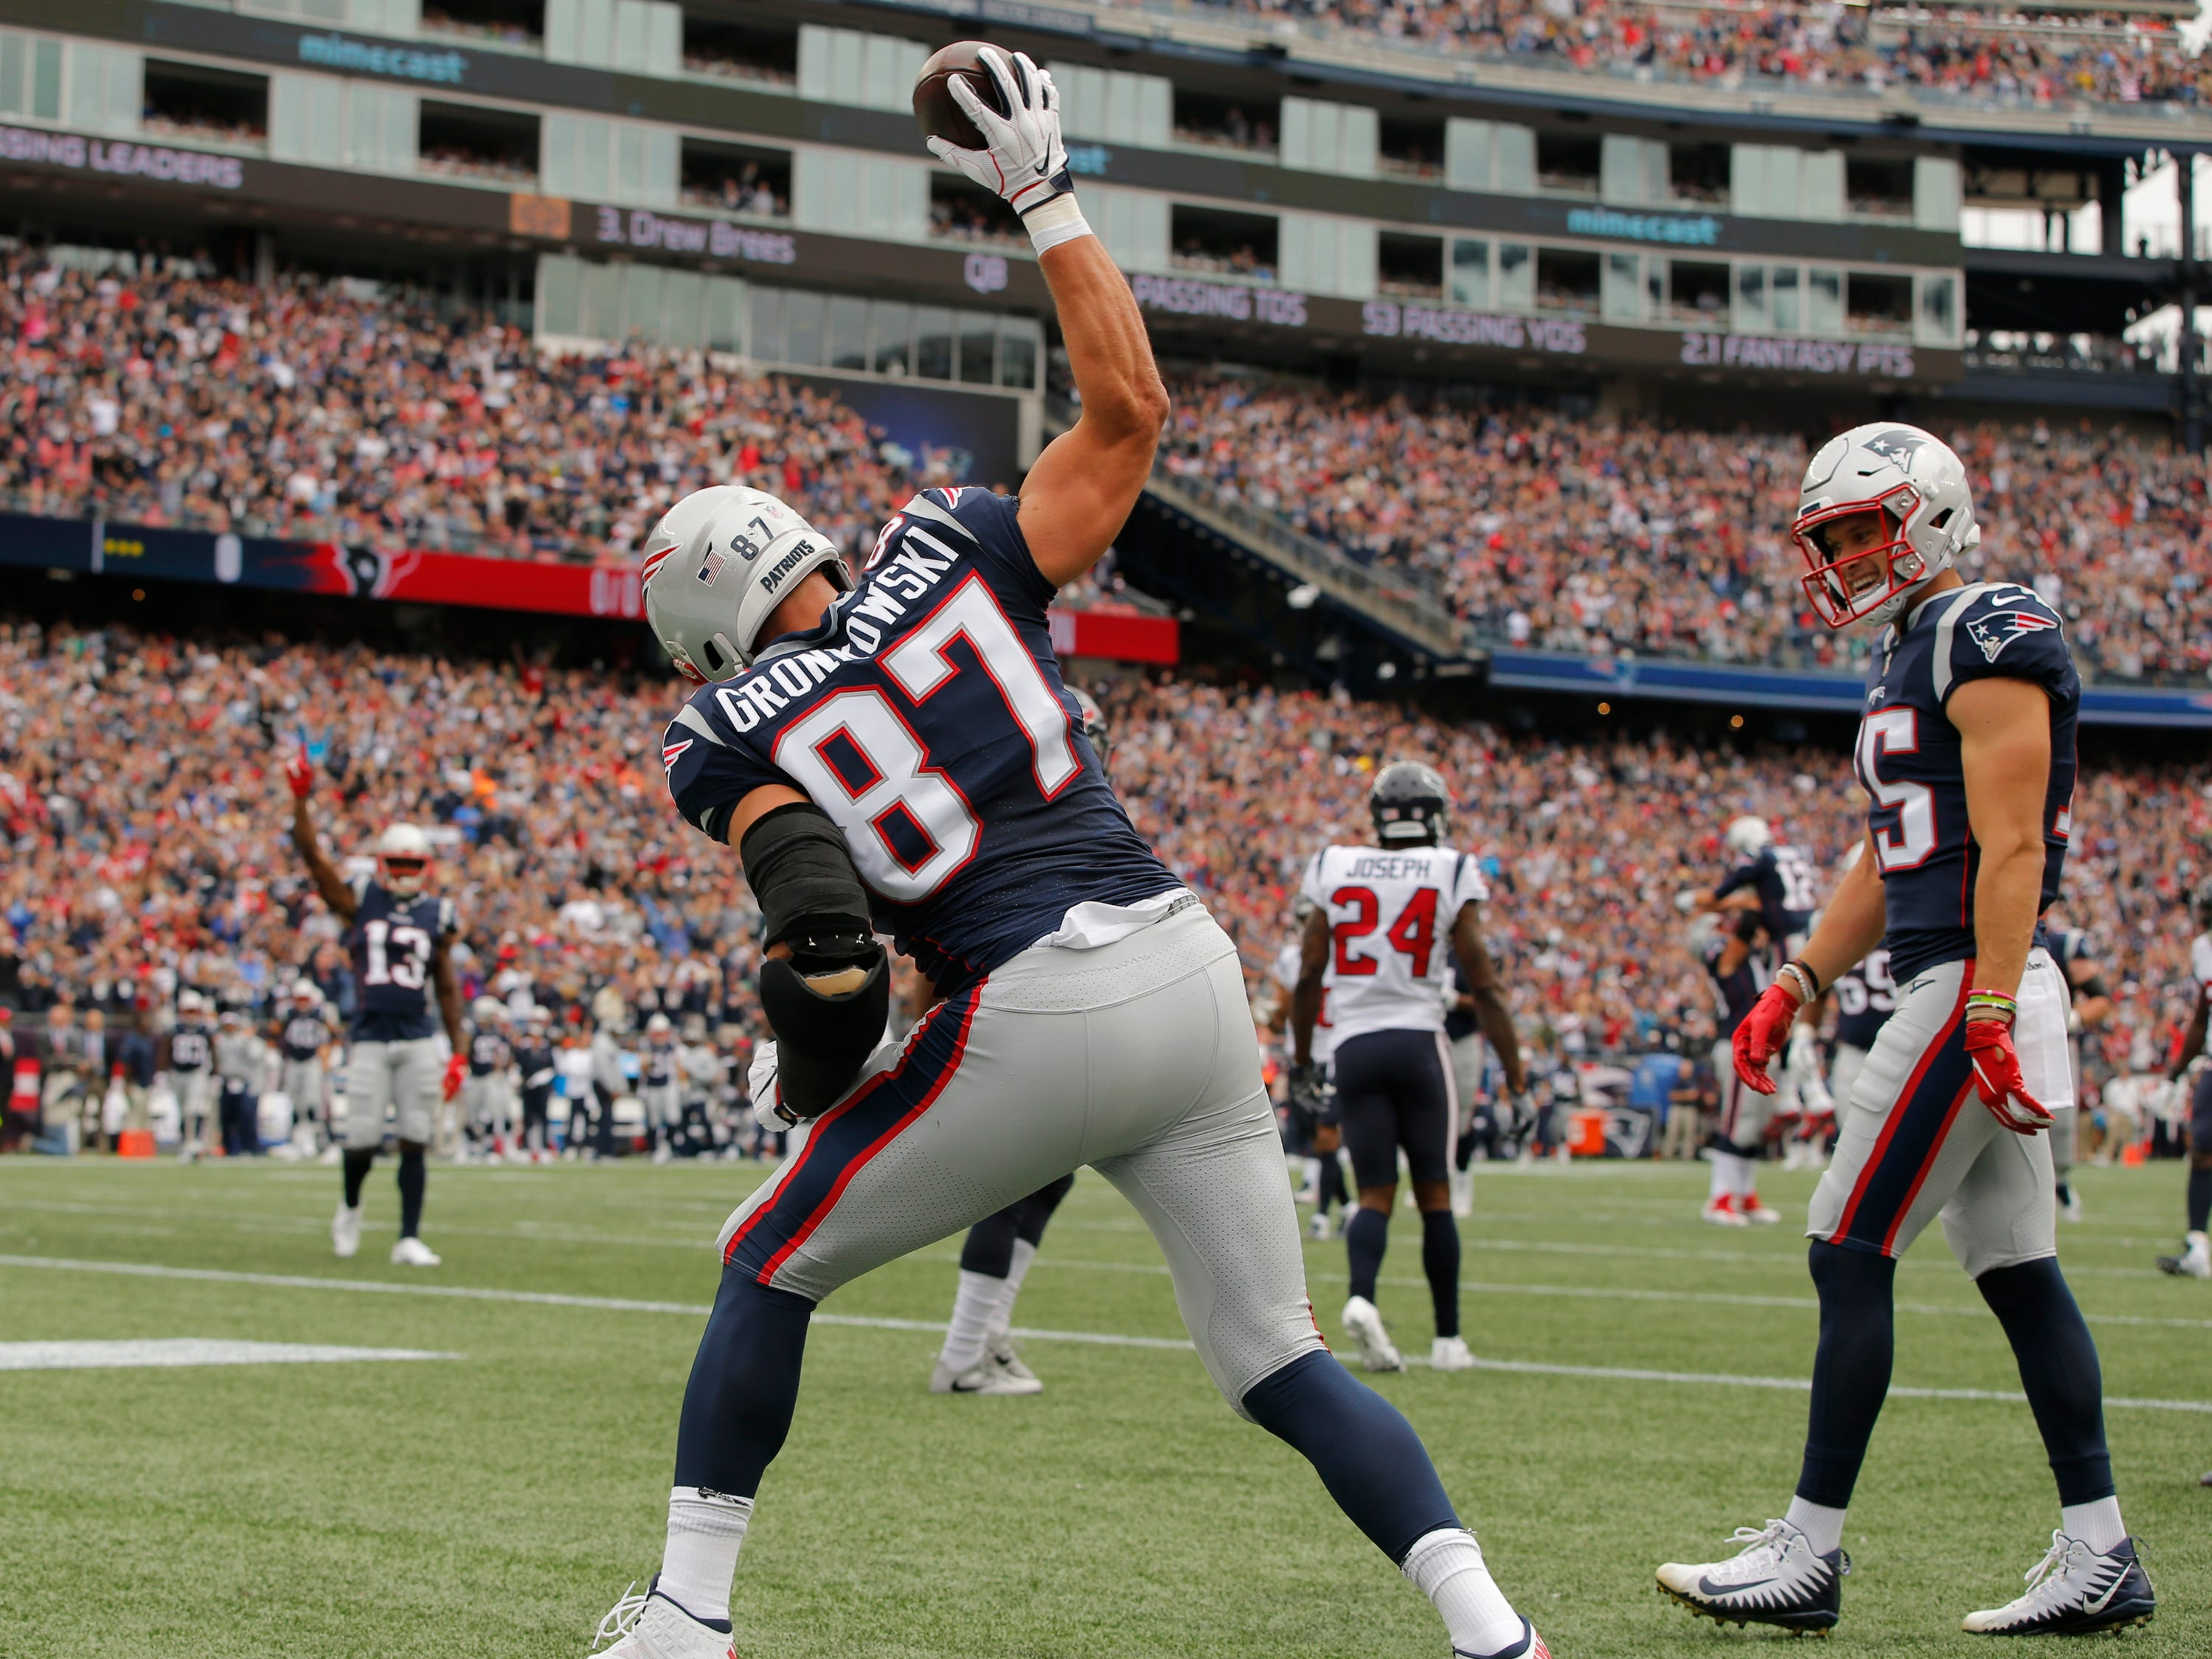 New England Patriots tight end Rob Gronkowski reacts after his touchdown against the Houston Texans in the first quarter at Gillette Stadium.